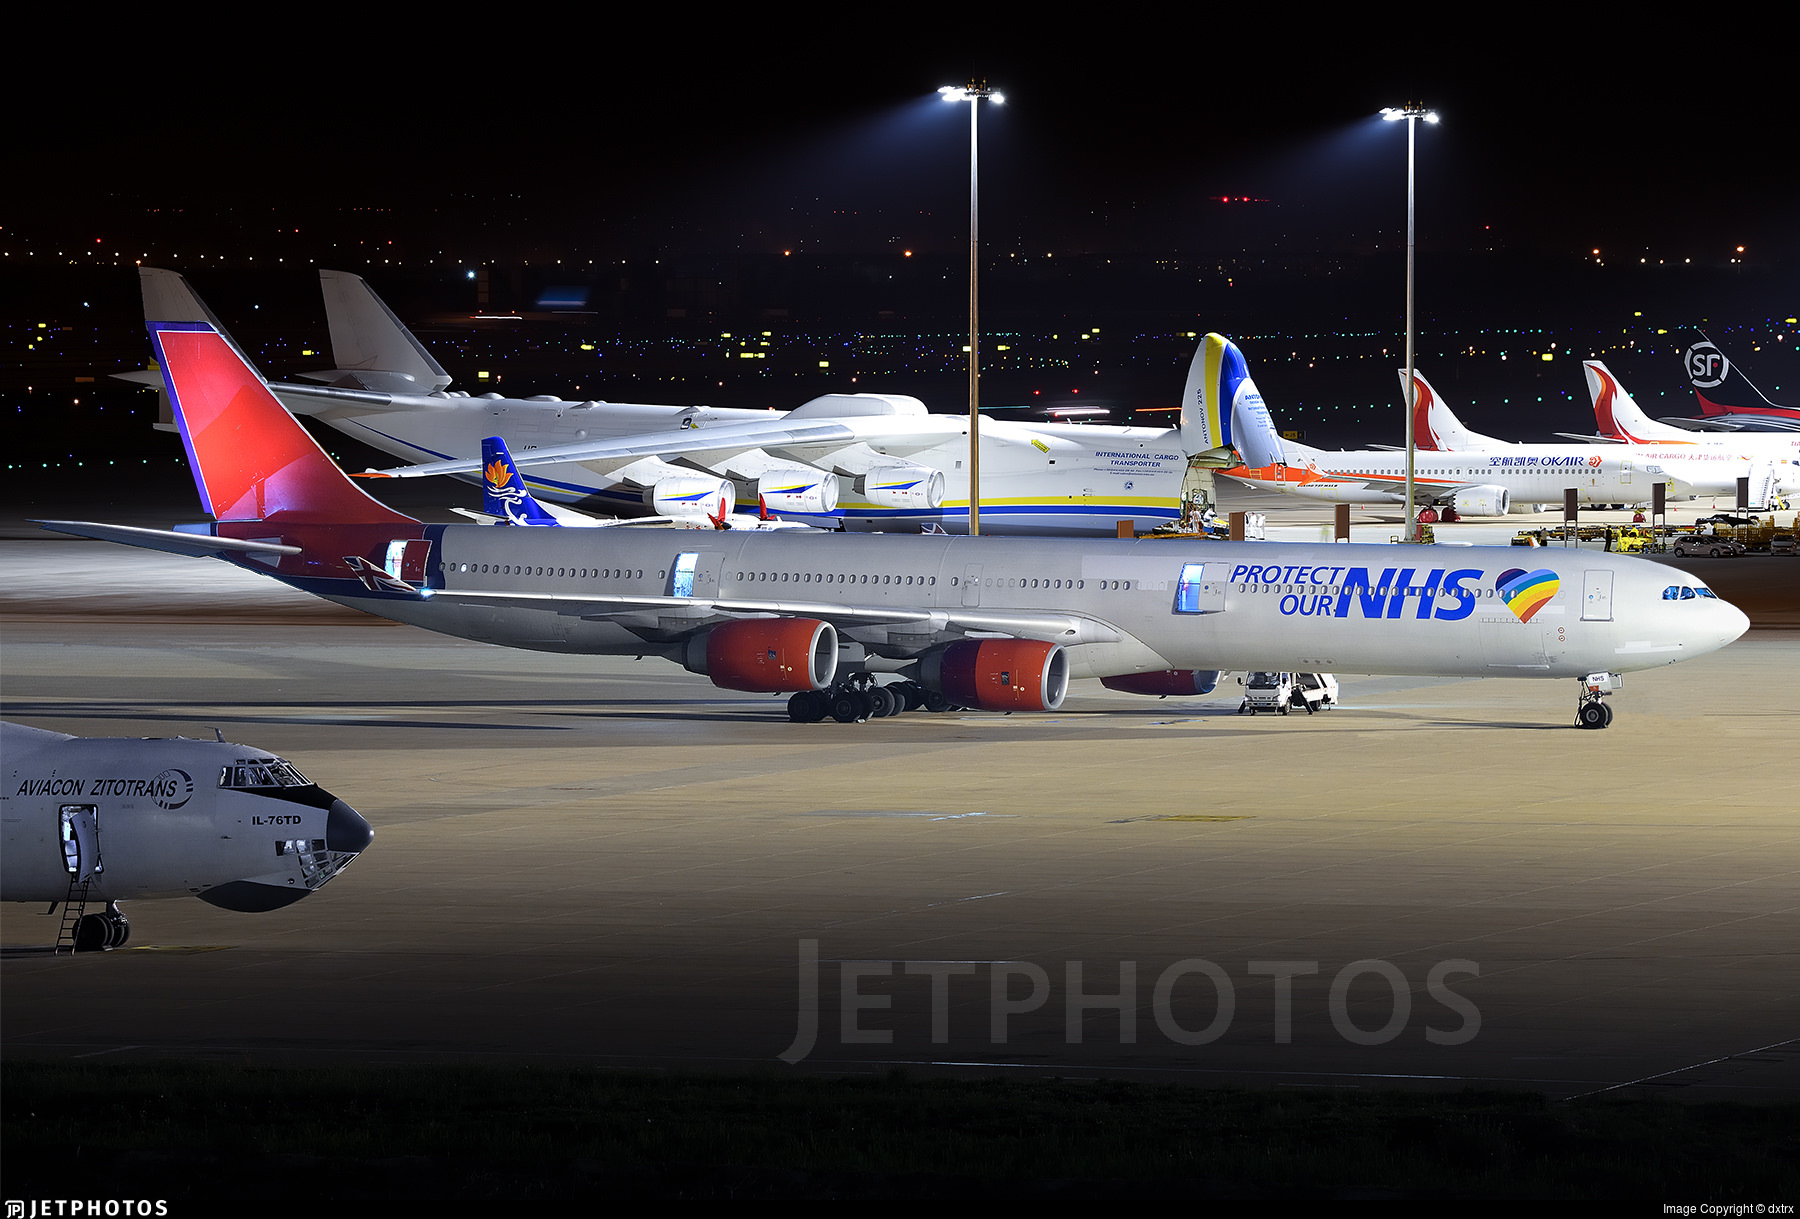 A European Cargo A340 in Tianjin to collect medical supplies for the UK